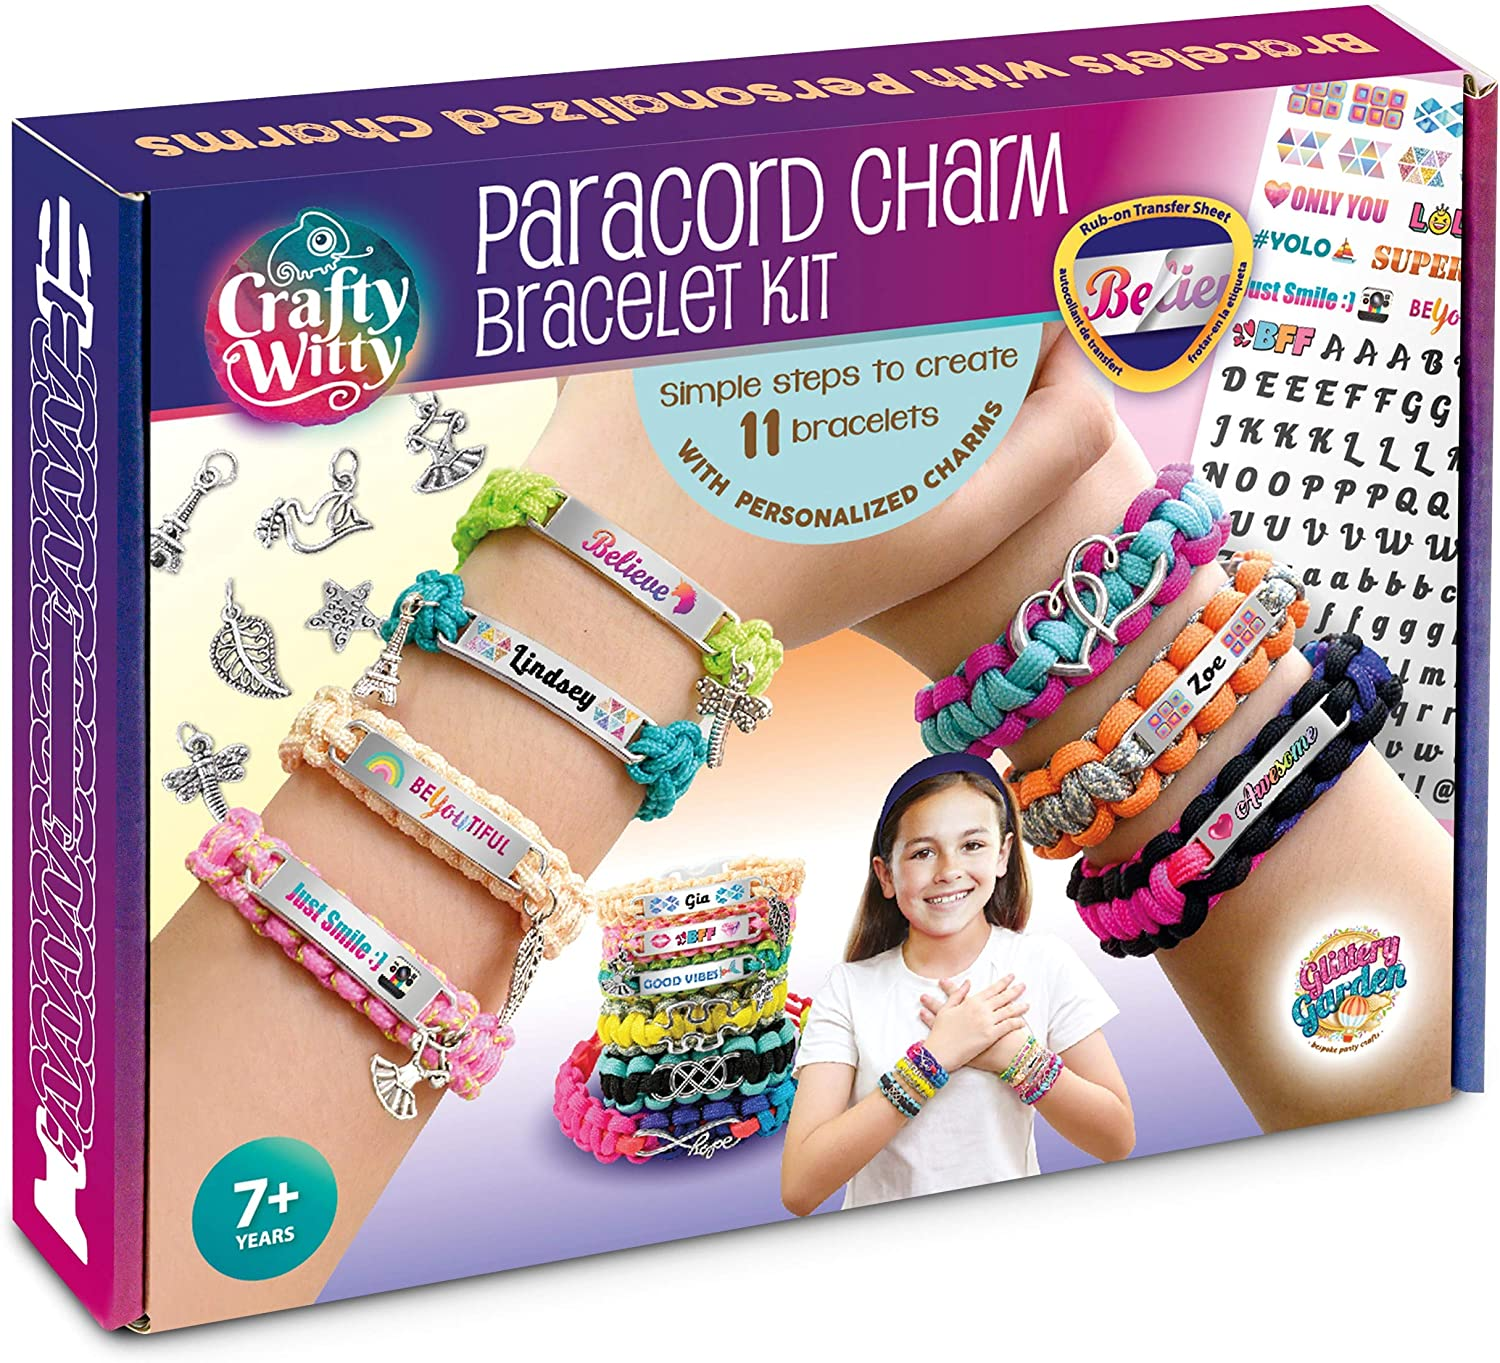 Memphis Mall Paracord Bracelet Making Kit with Charms Gift Art for Cheap mail order sales - Craft